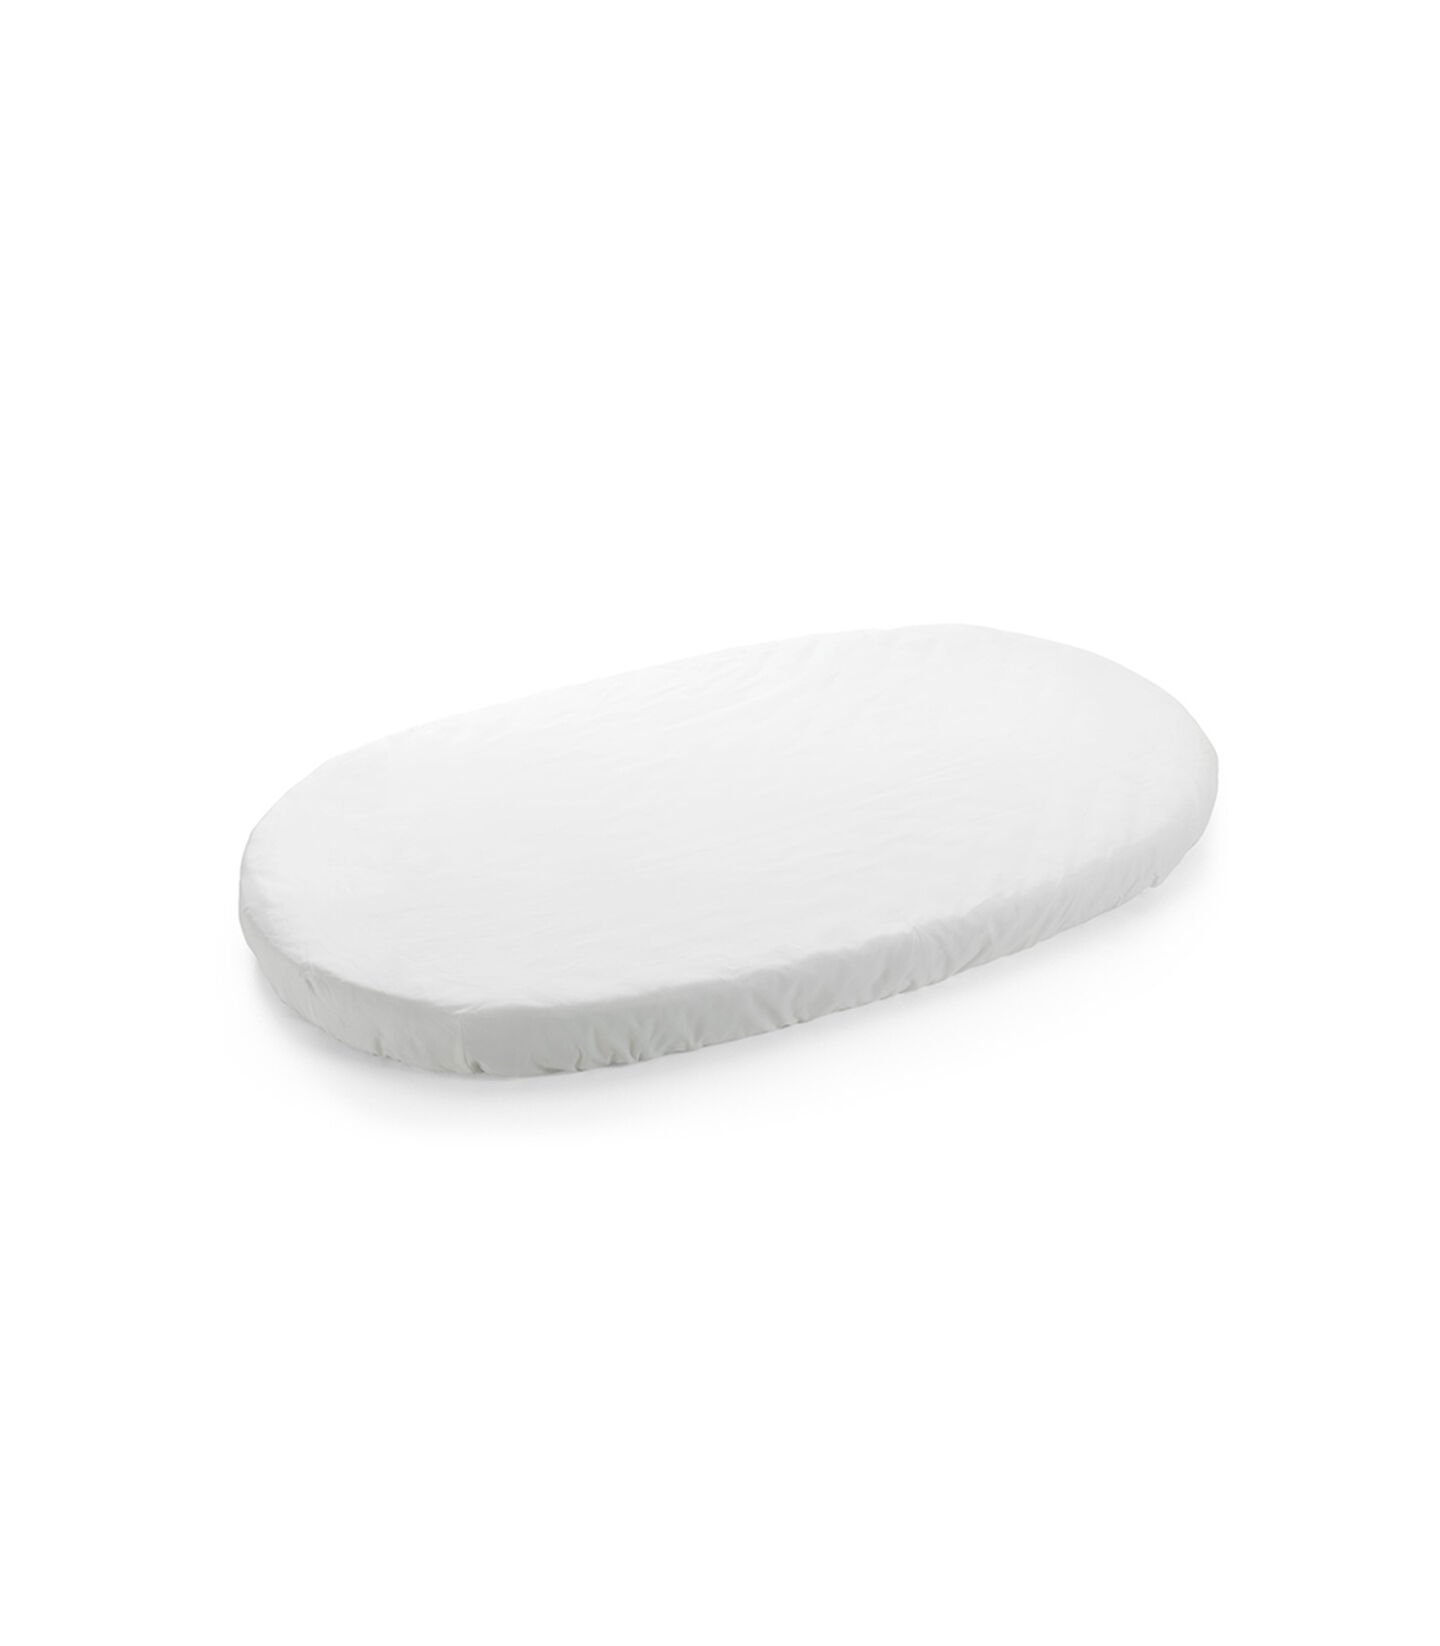 Stokke® Sleepi™ Bed Fitted Sheet. White.